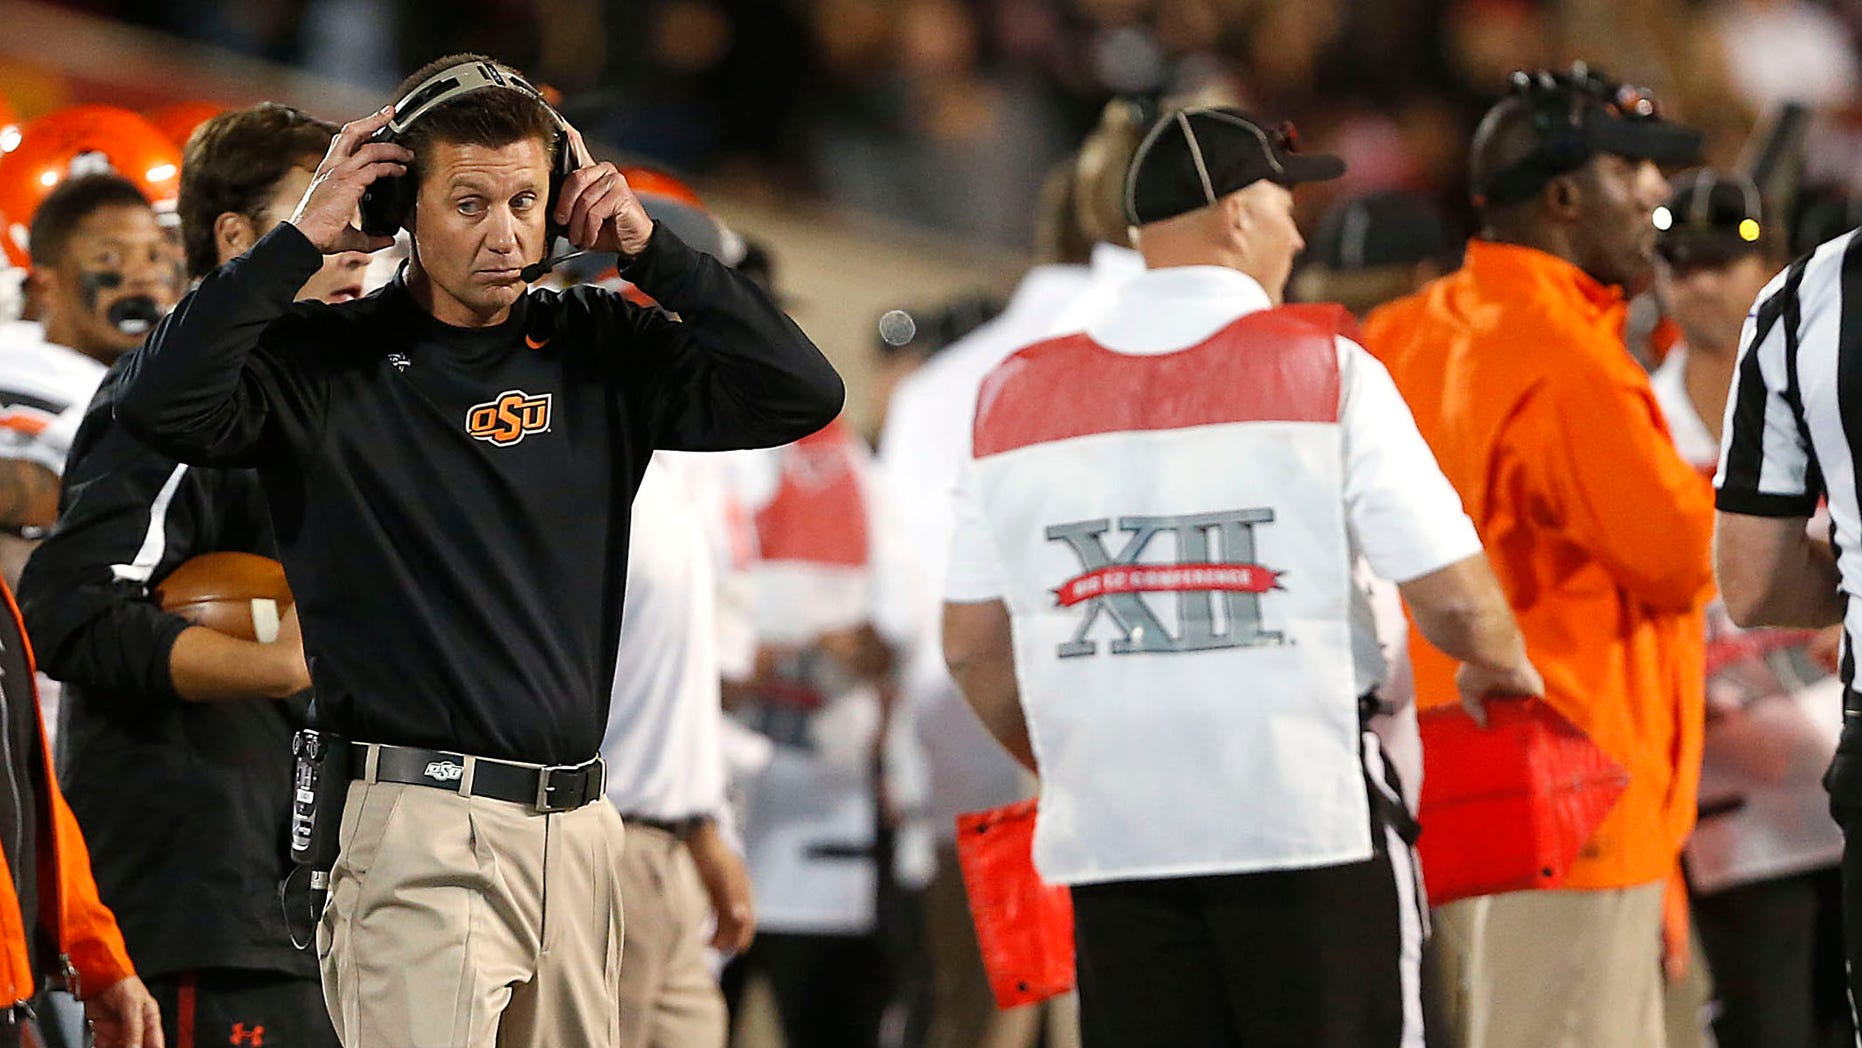 Oklahoma State coach Mike Gundy watches as his team competes against Texas Tech during their NCAA college football game in Lubbock, Texas, Saturday, Nov. 2, 2013. (AP Photo/Lubbock Avalanche-Journal,Stephen Spillman)